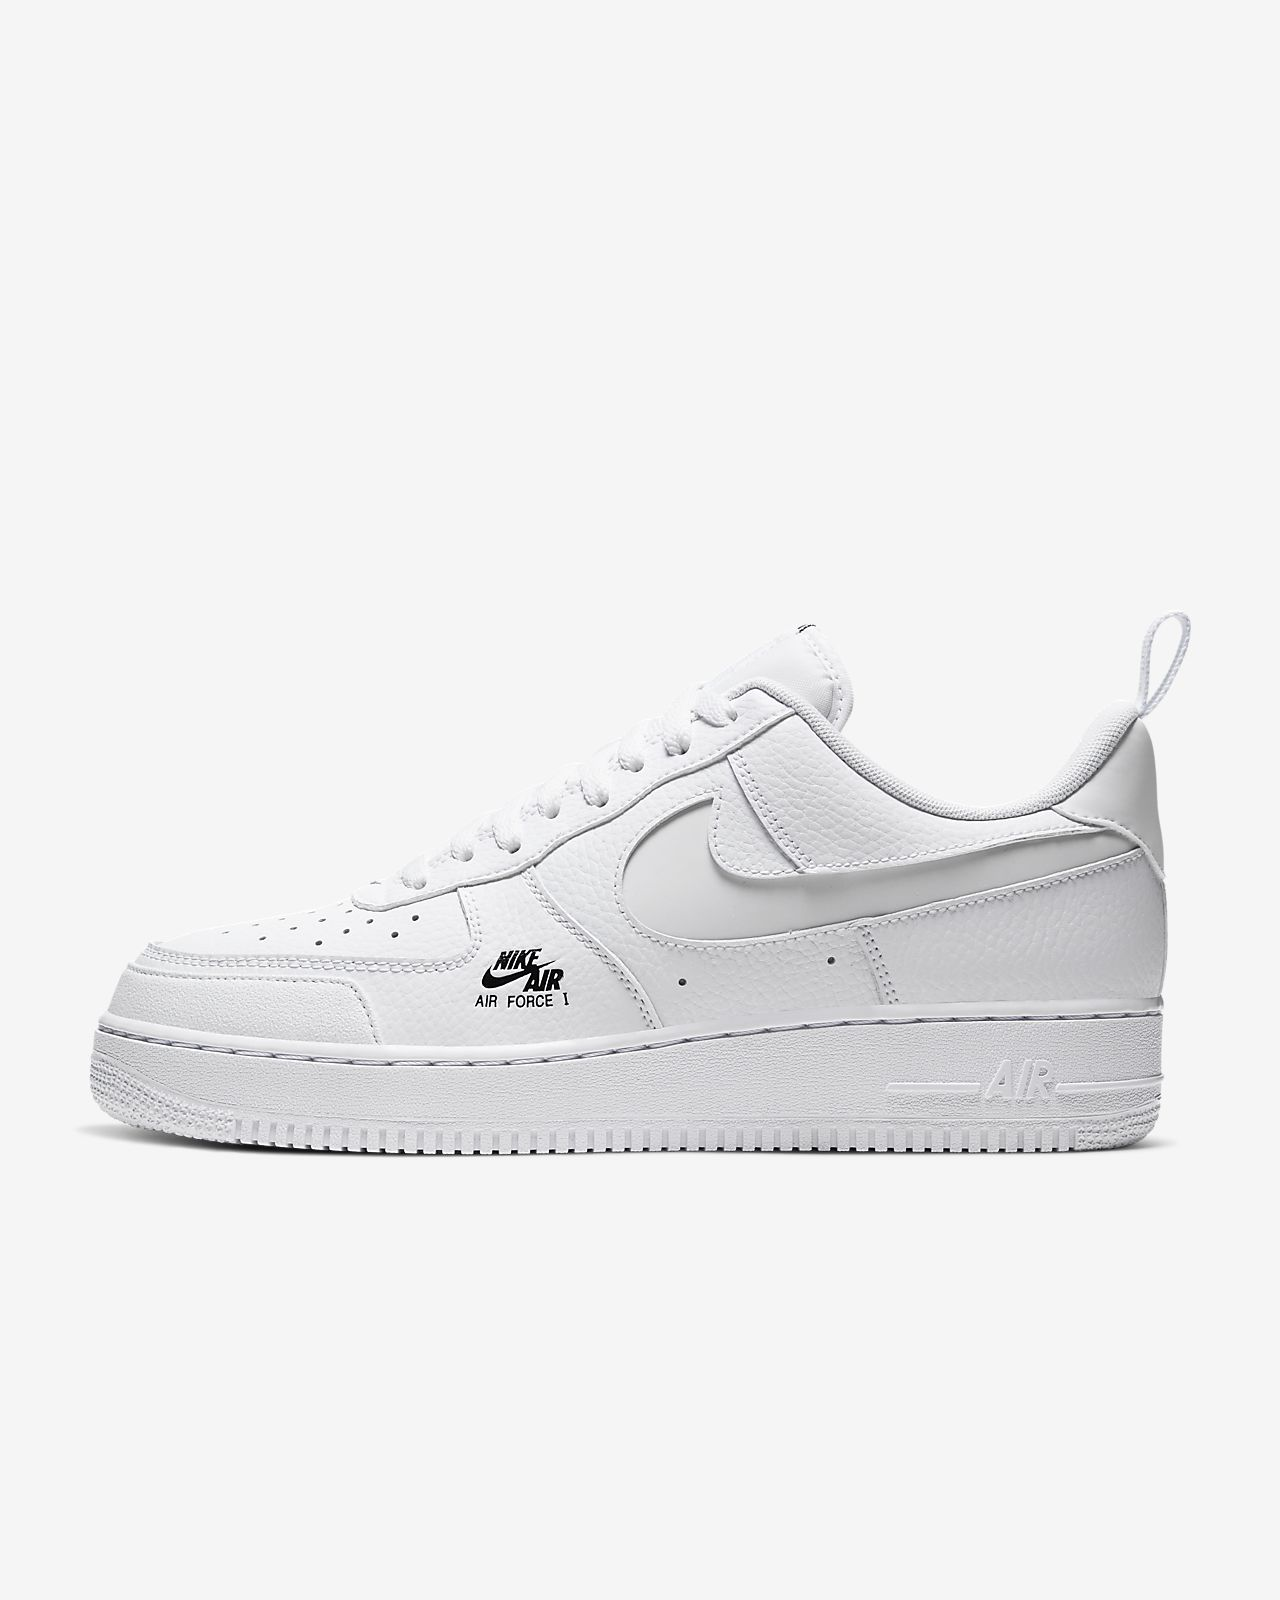 NIKE Air Force 1 '07 LV8 Utility WhiteBlack | Nike shoes